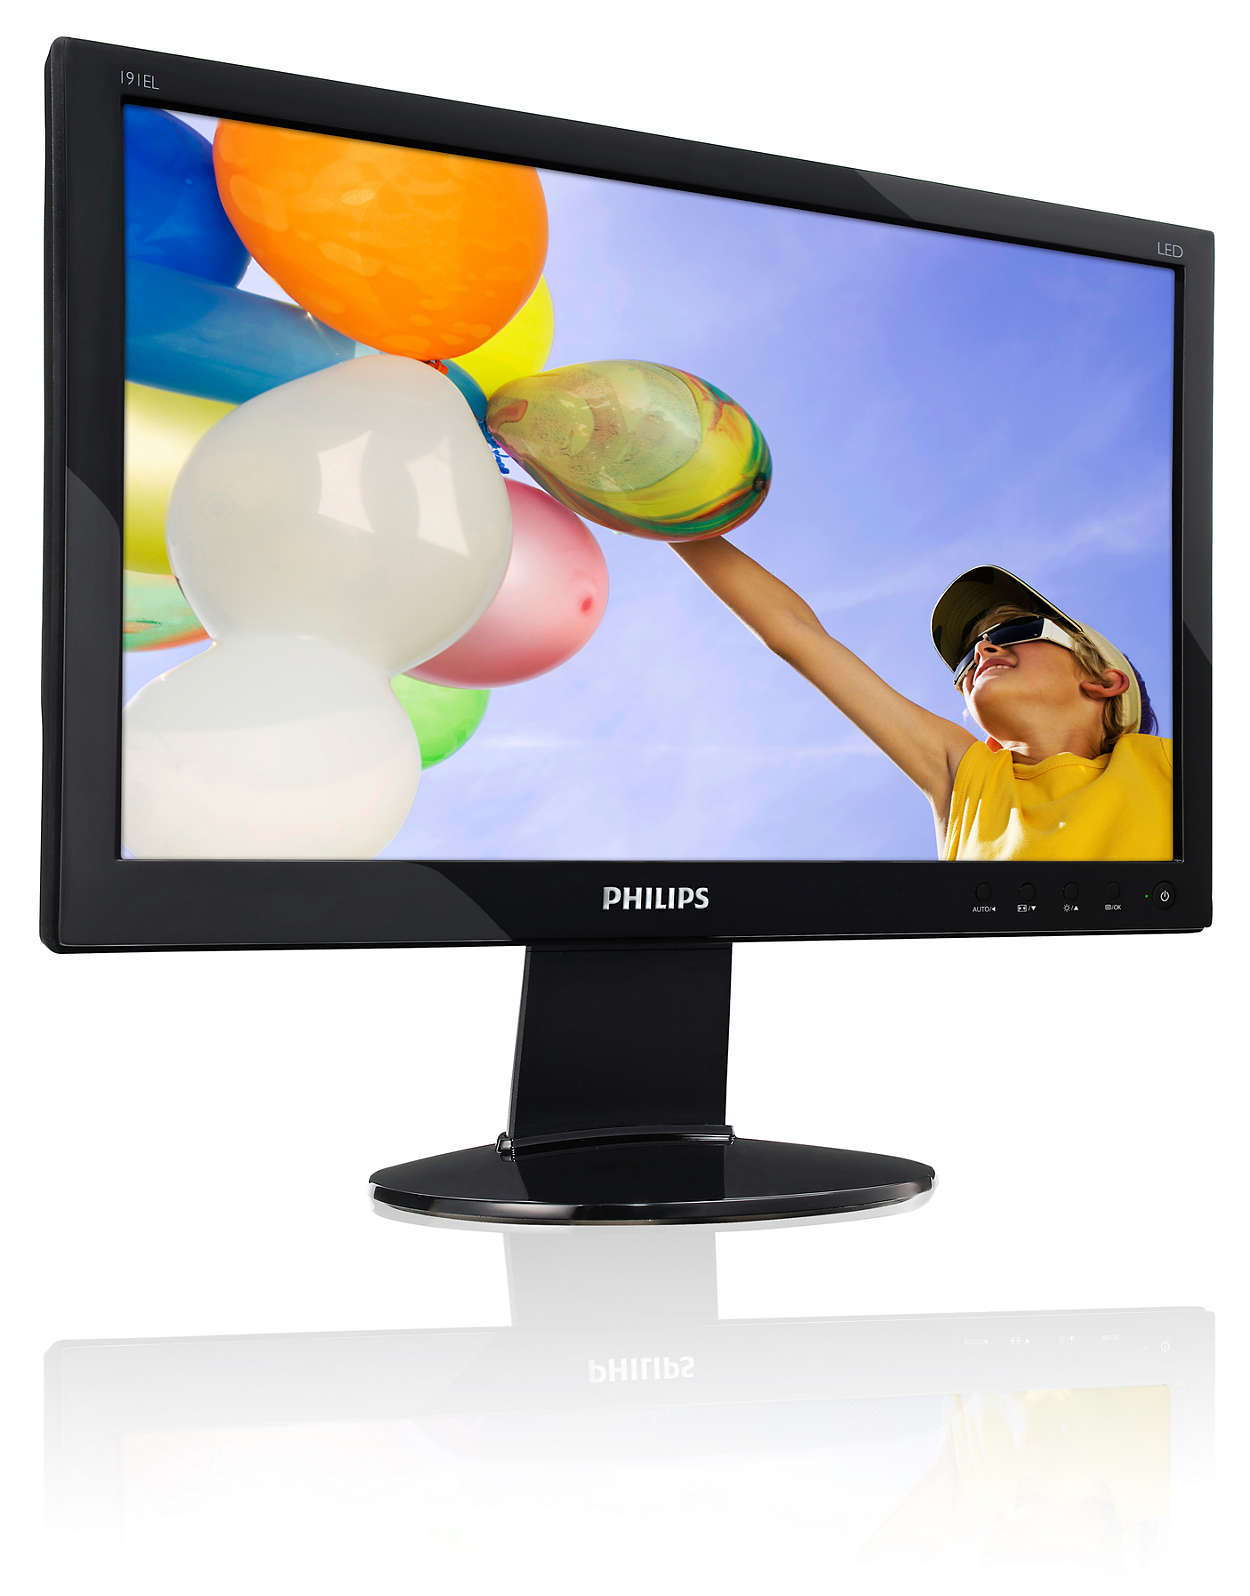 PHILIPS 18.5 LED (193V5)